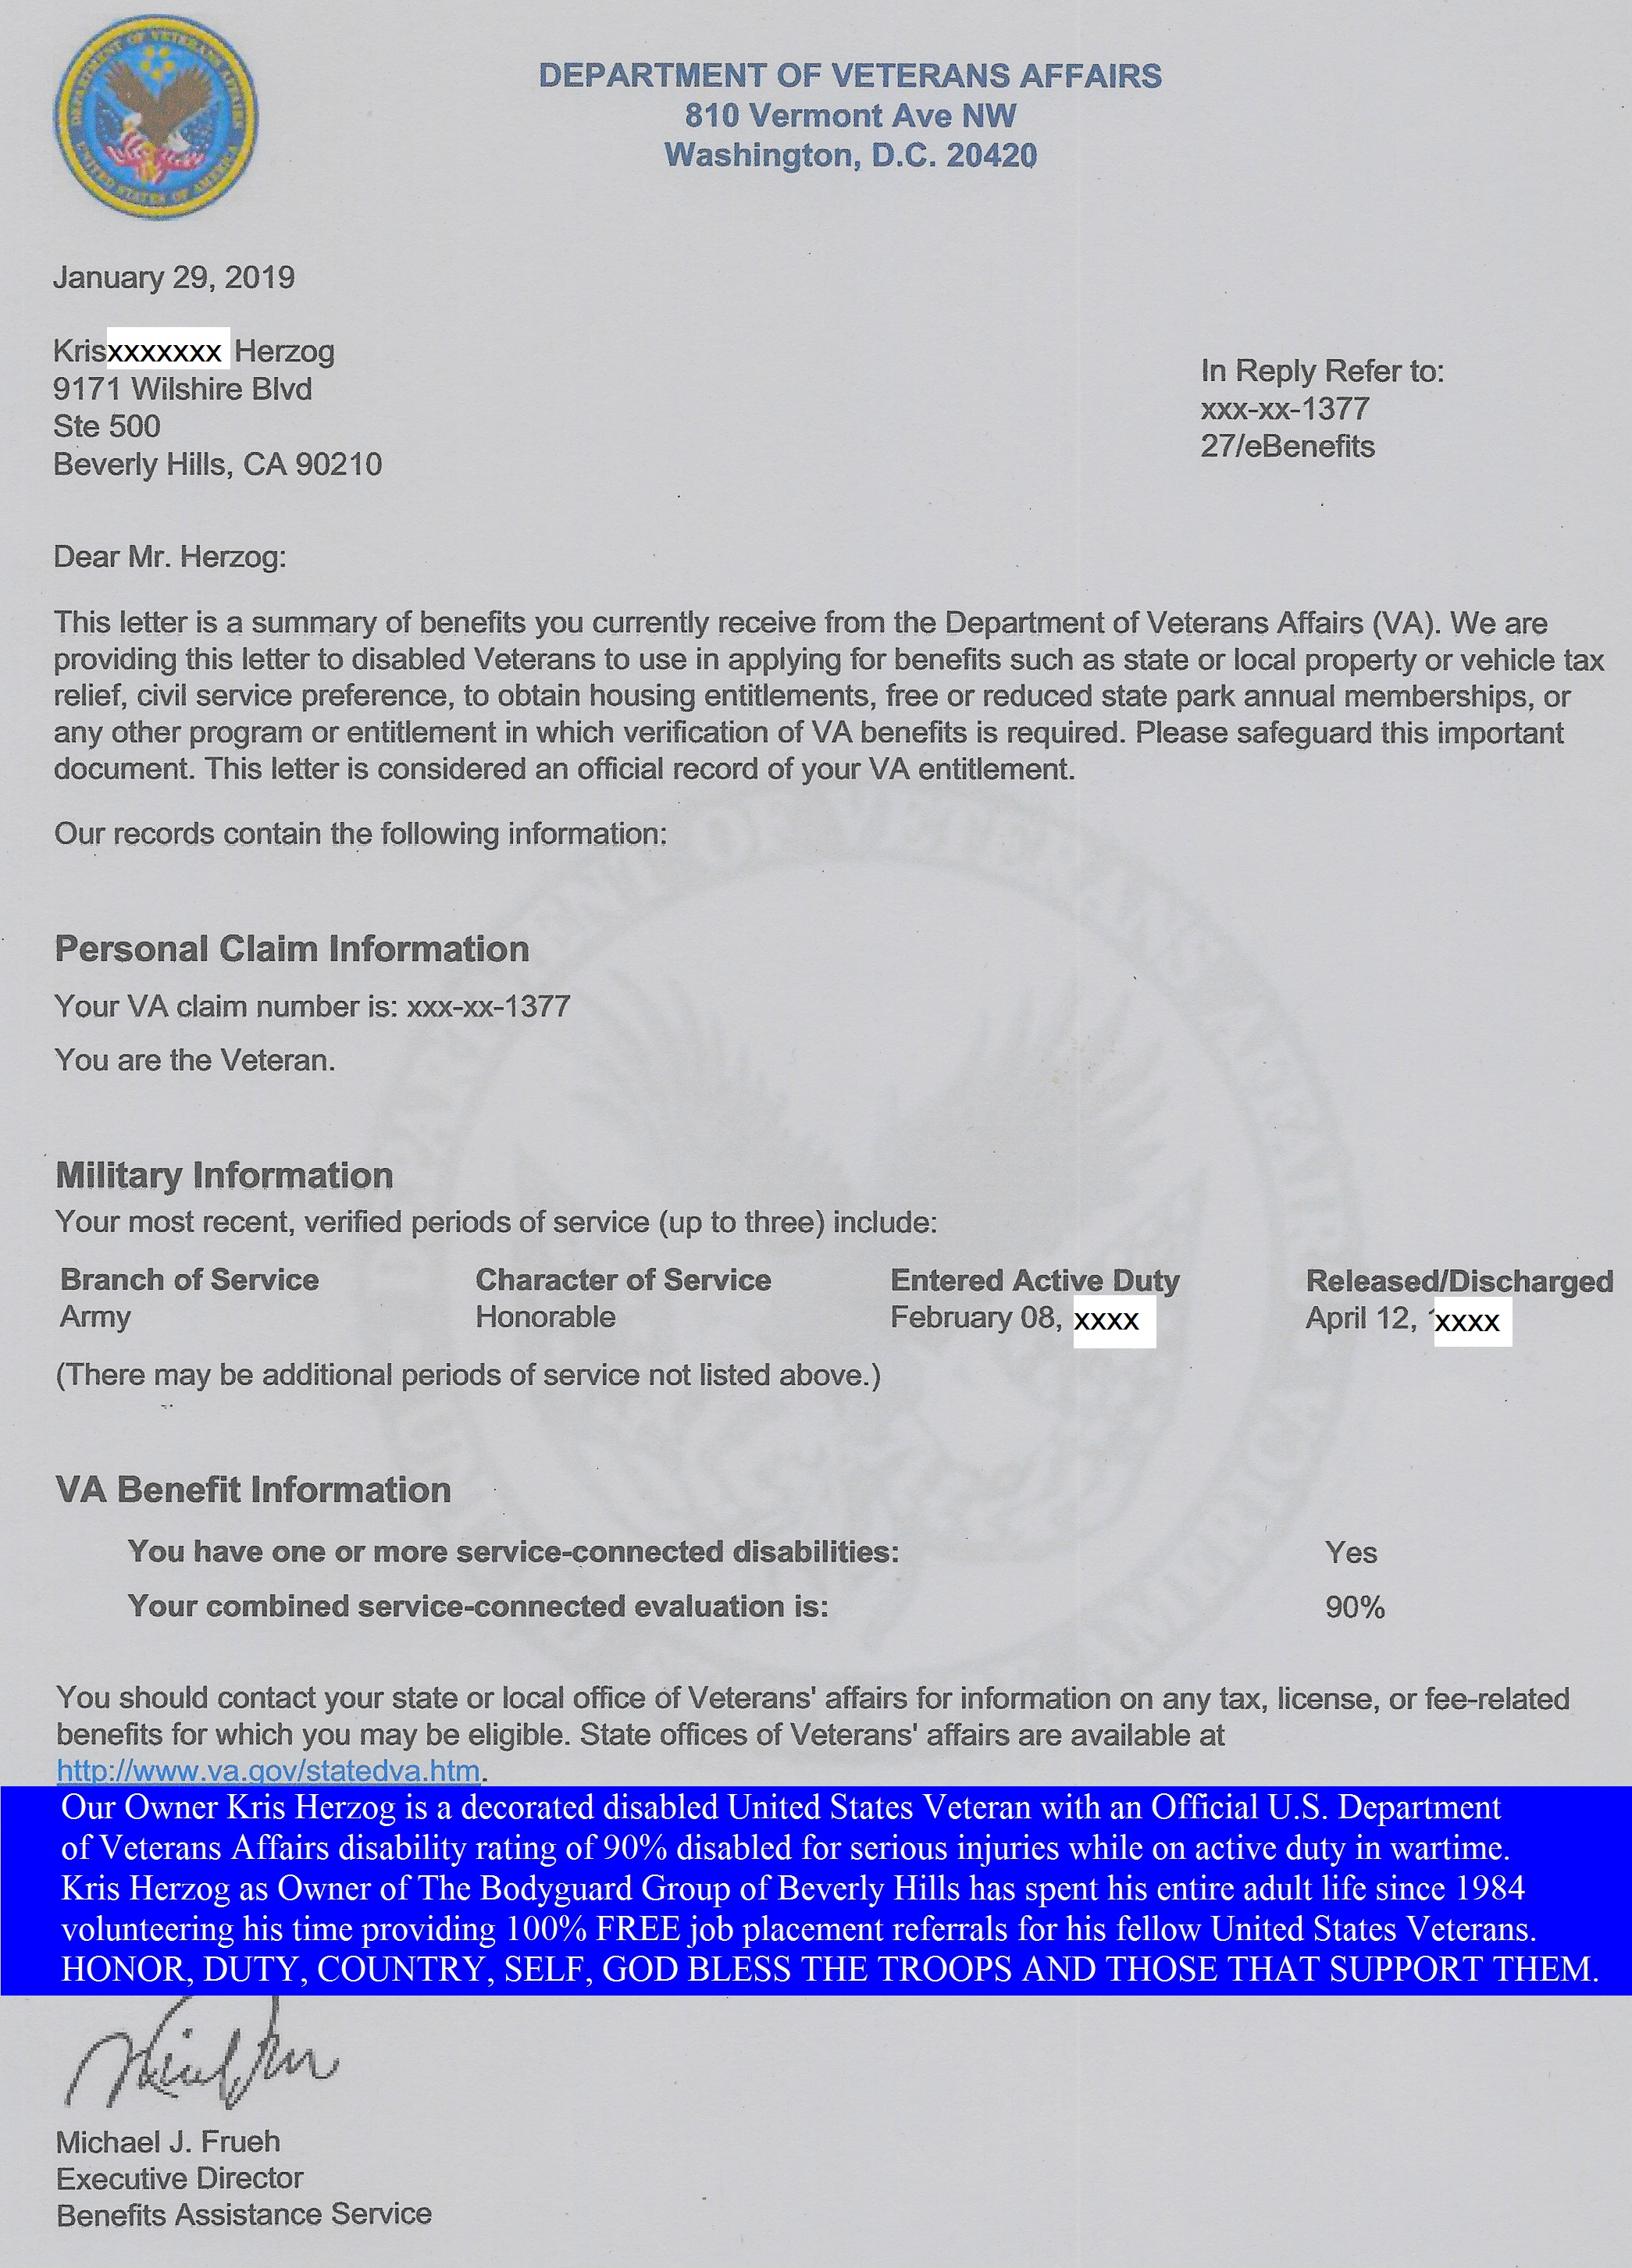 Kris Herzog The Bodyguard Group of Beverly Hills 90210 security U.S. Veteran certification letter U.S. Dept of Veterans Affairs